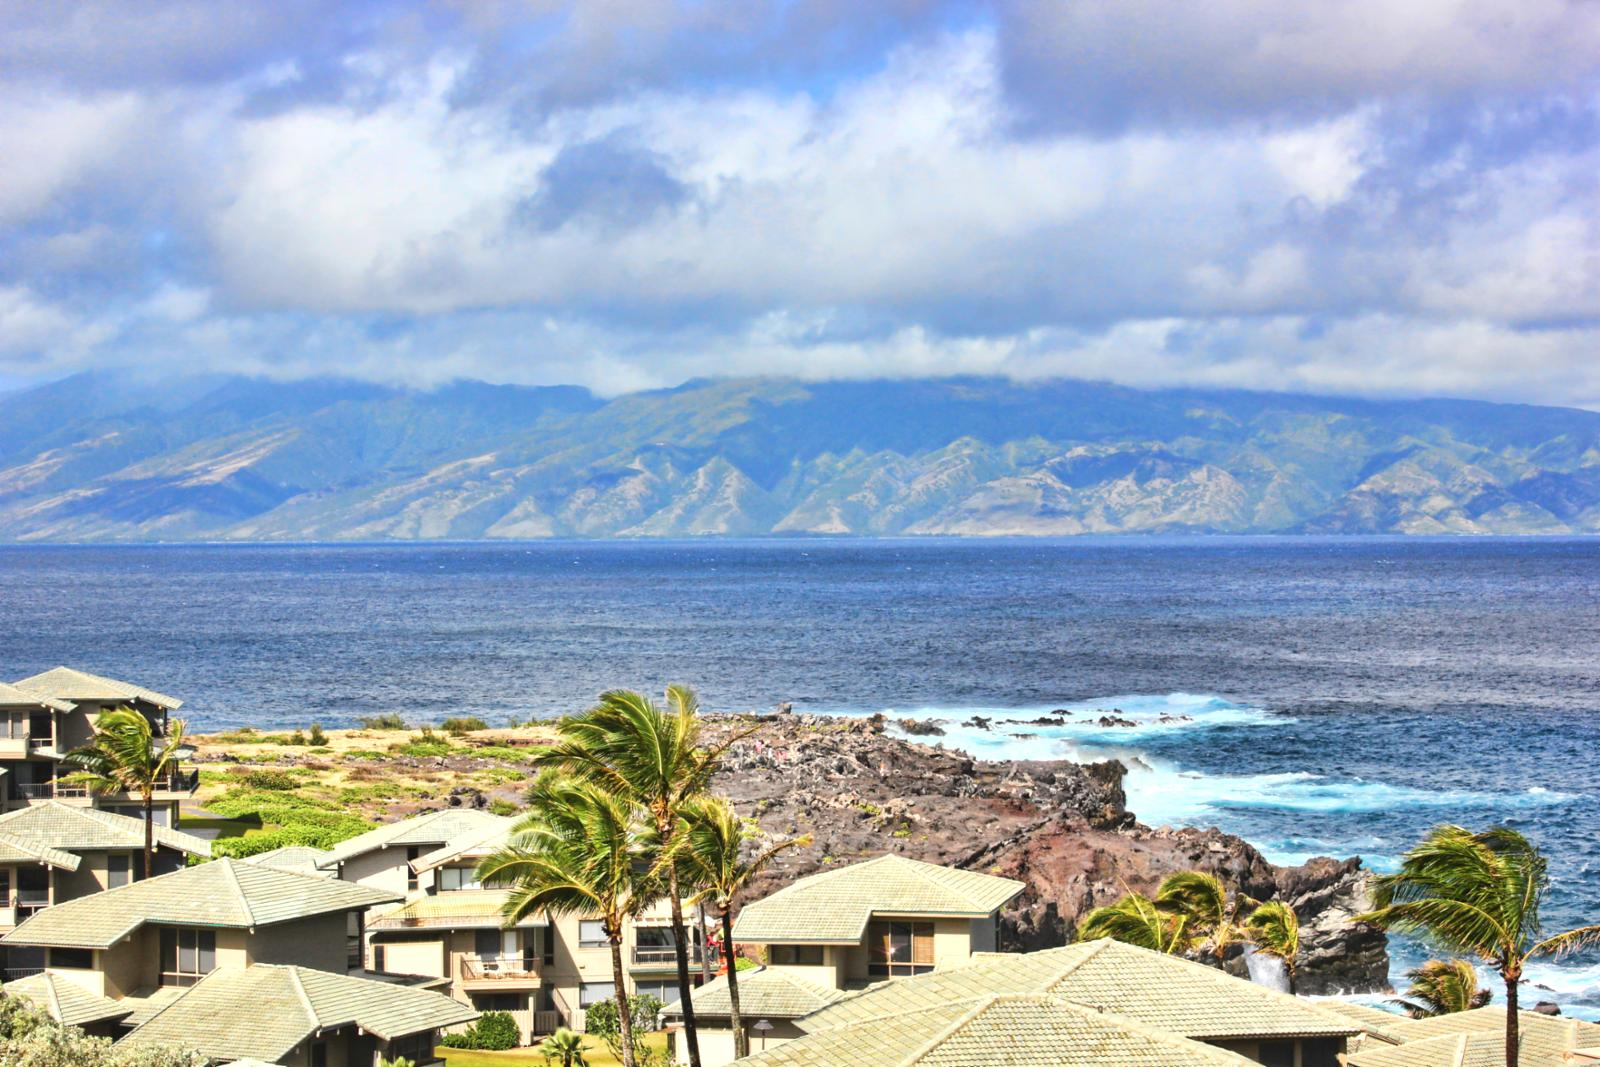 Views of Molokai are endless and when the whales are jumping you are going to spend the days just watching them play from this private villa.